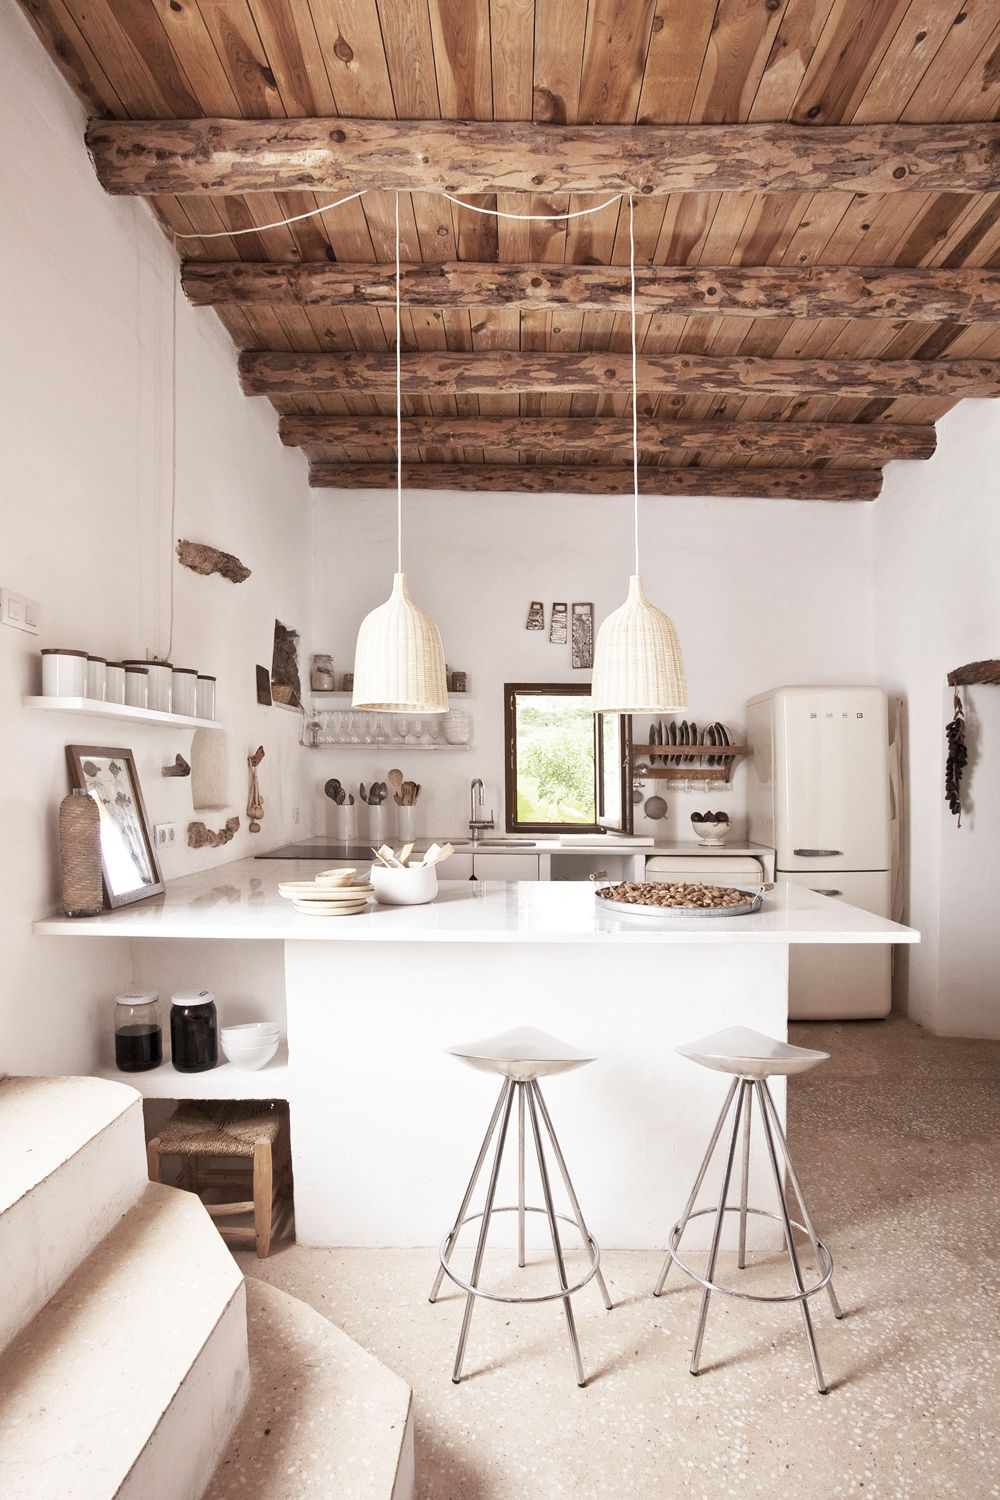 Muebles En Ibiza Ibiza Villa Home Holiday Interiors Inspiration Sunday